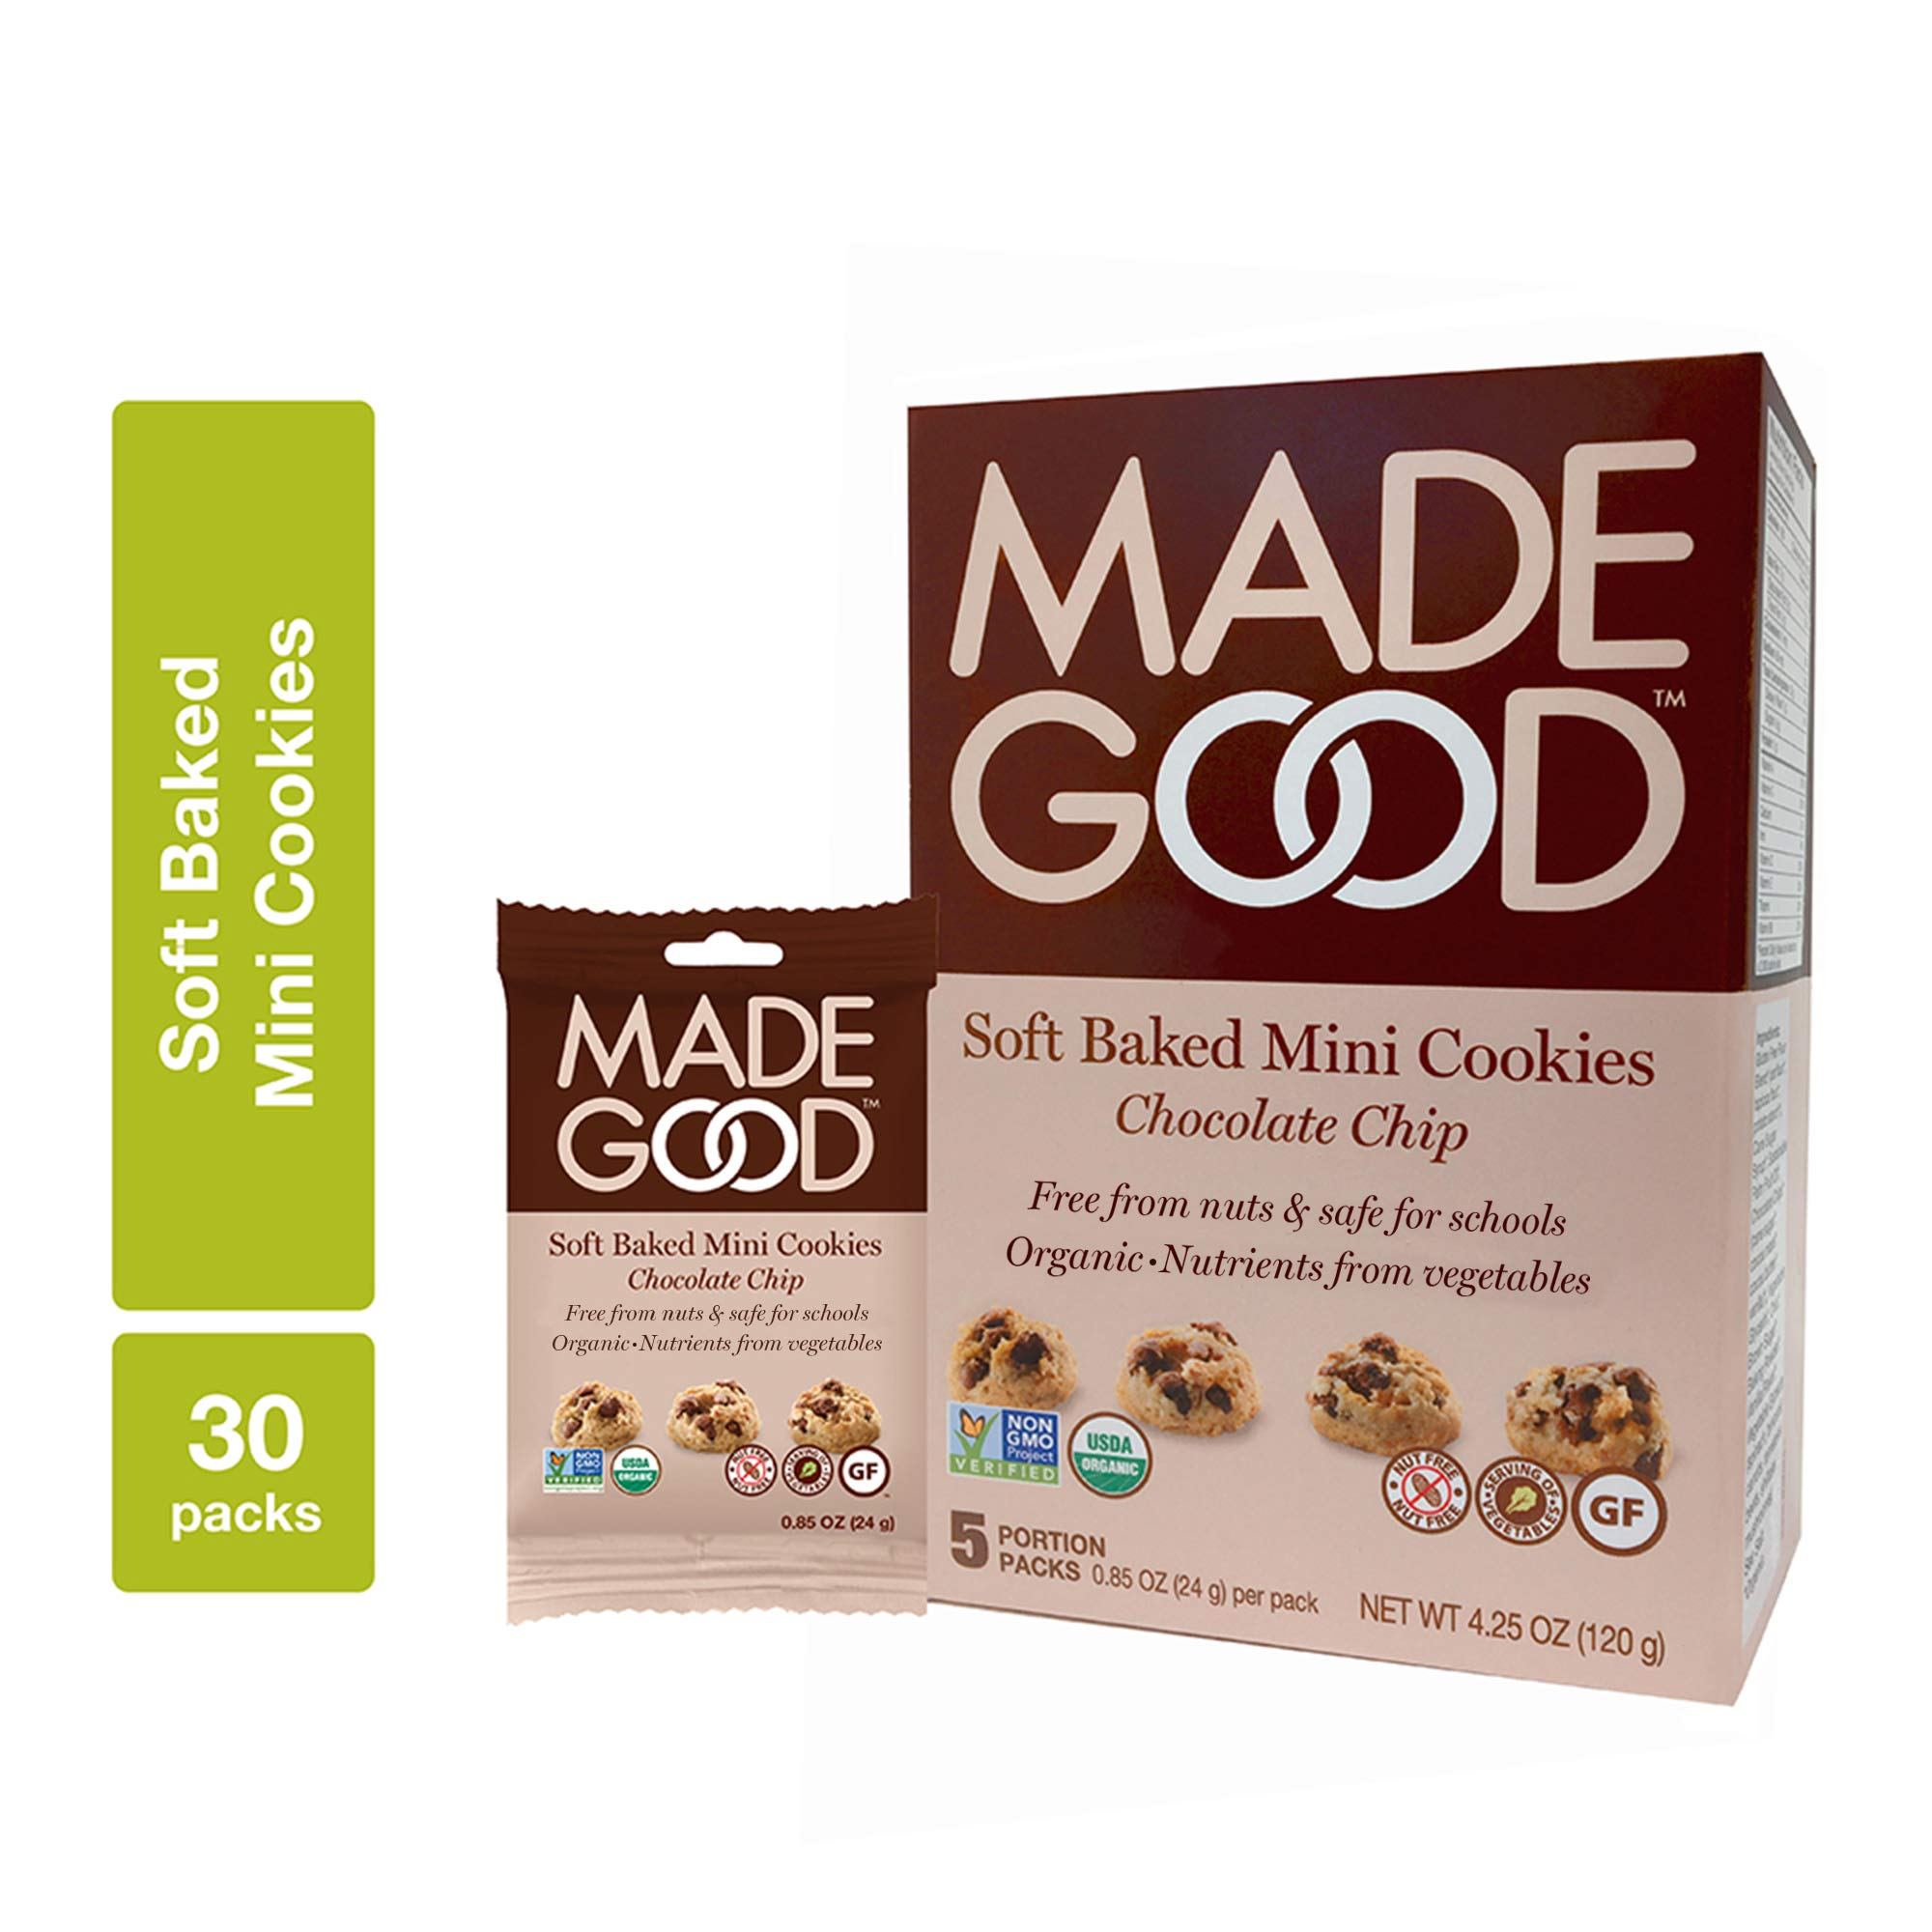 MadeGood Soft Baked Chocolate Chip Mini Cookies, 6 boxes (30 ct); Nut-Free, Gluten Free, Allergy Friendly, USDA Certified Organic, Vegan, Non-GMO Ingredients; Nutrients of a Full Serving of Vegetables by Made Good